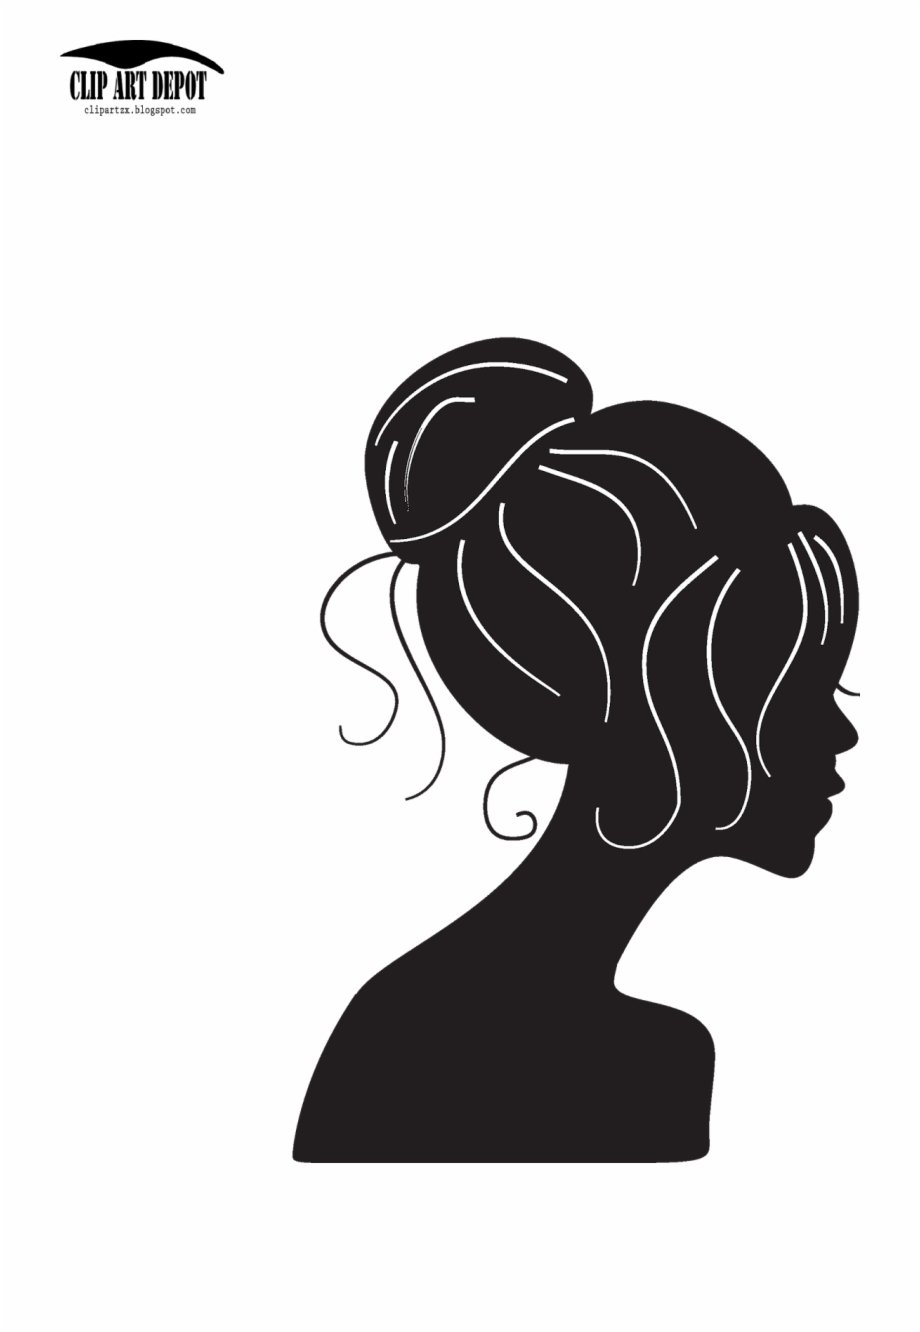 Female face silhouette clipart image black and white library Woman Face Silhouette Clip Art - Girl Silhouette Vector Png Free PNG ... image black and white library